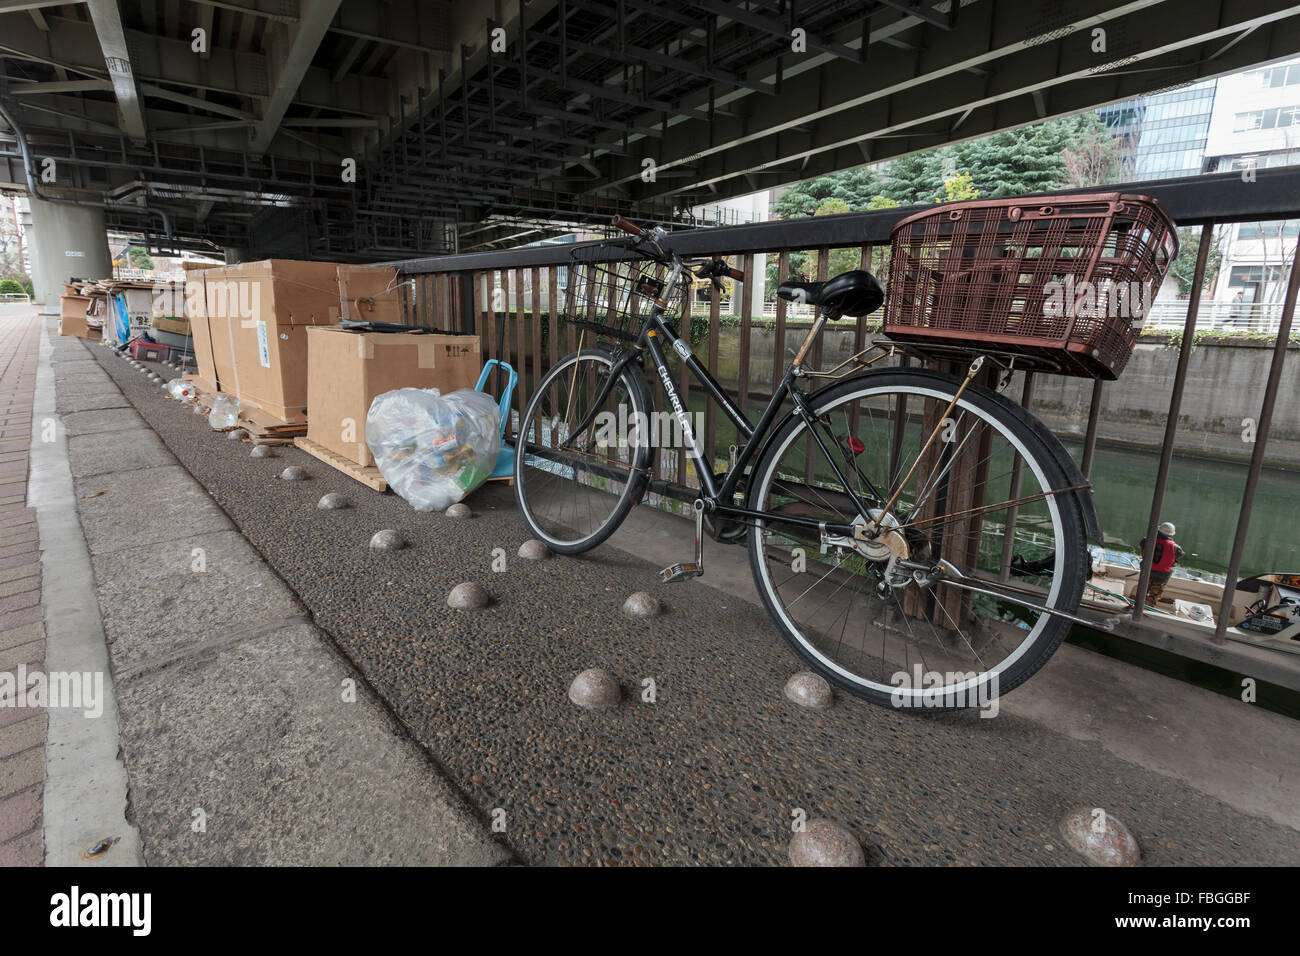 Bumps put in the ground to stop homeless people sleeping there by a riverside in Jinbocho, Tokyo, Japan. January - Stock Image